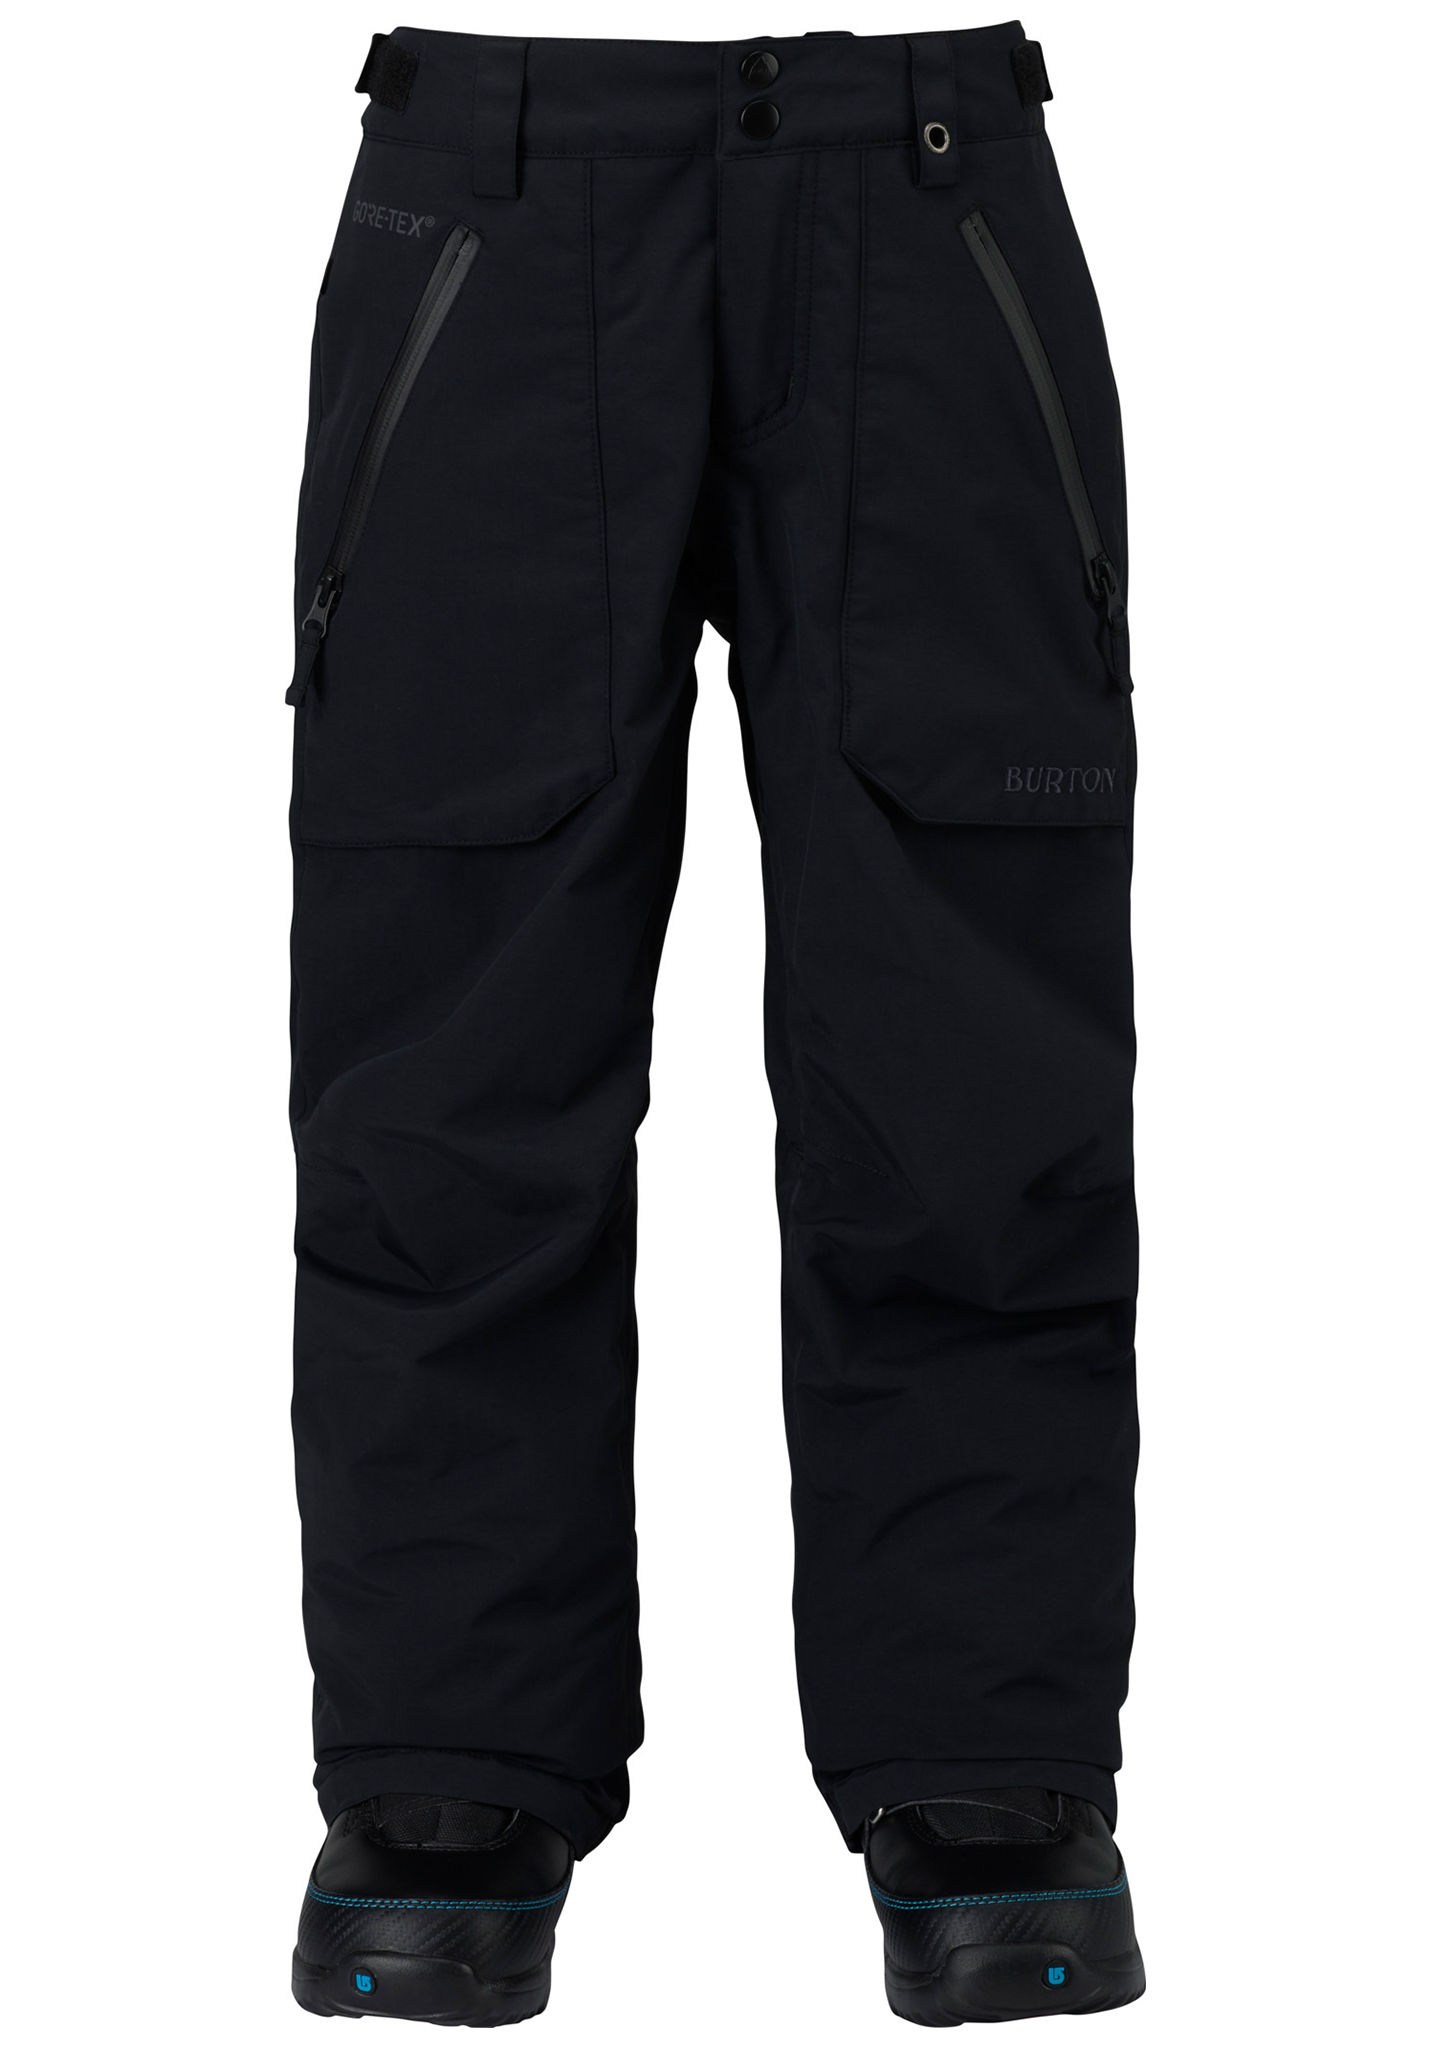 1965cc781155 Burton Gore Stark - Snowboard Pants for Kids Boys - Black - Planet ...